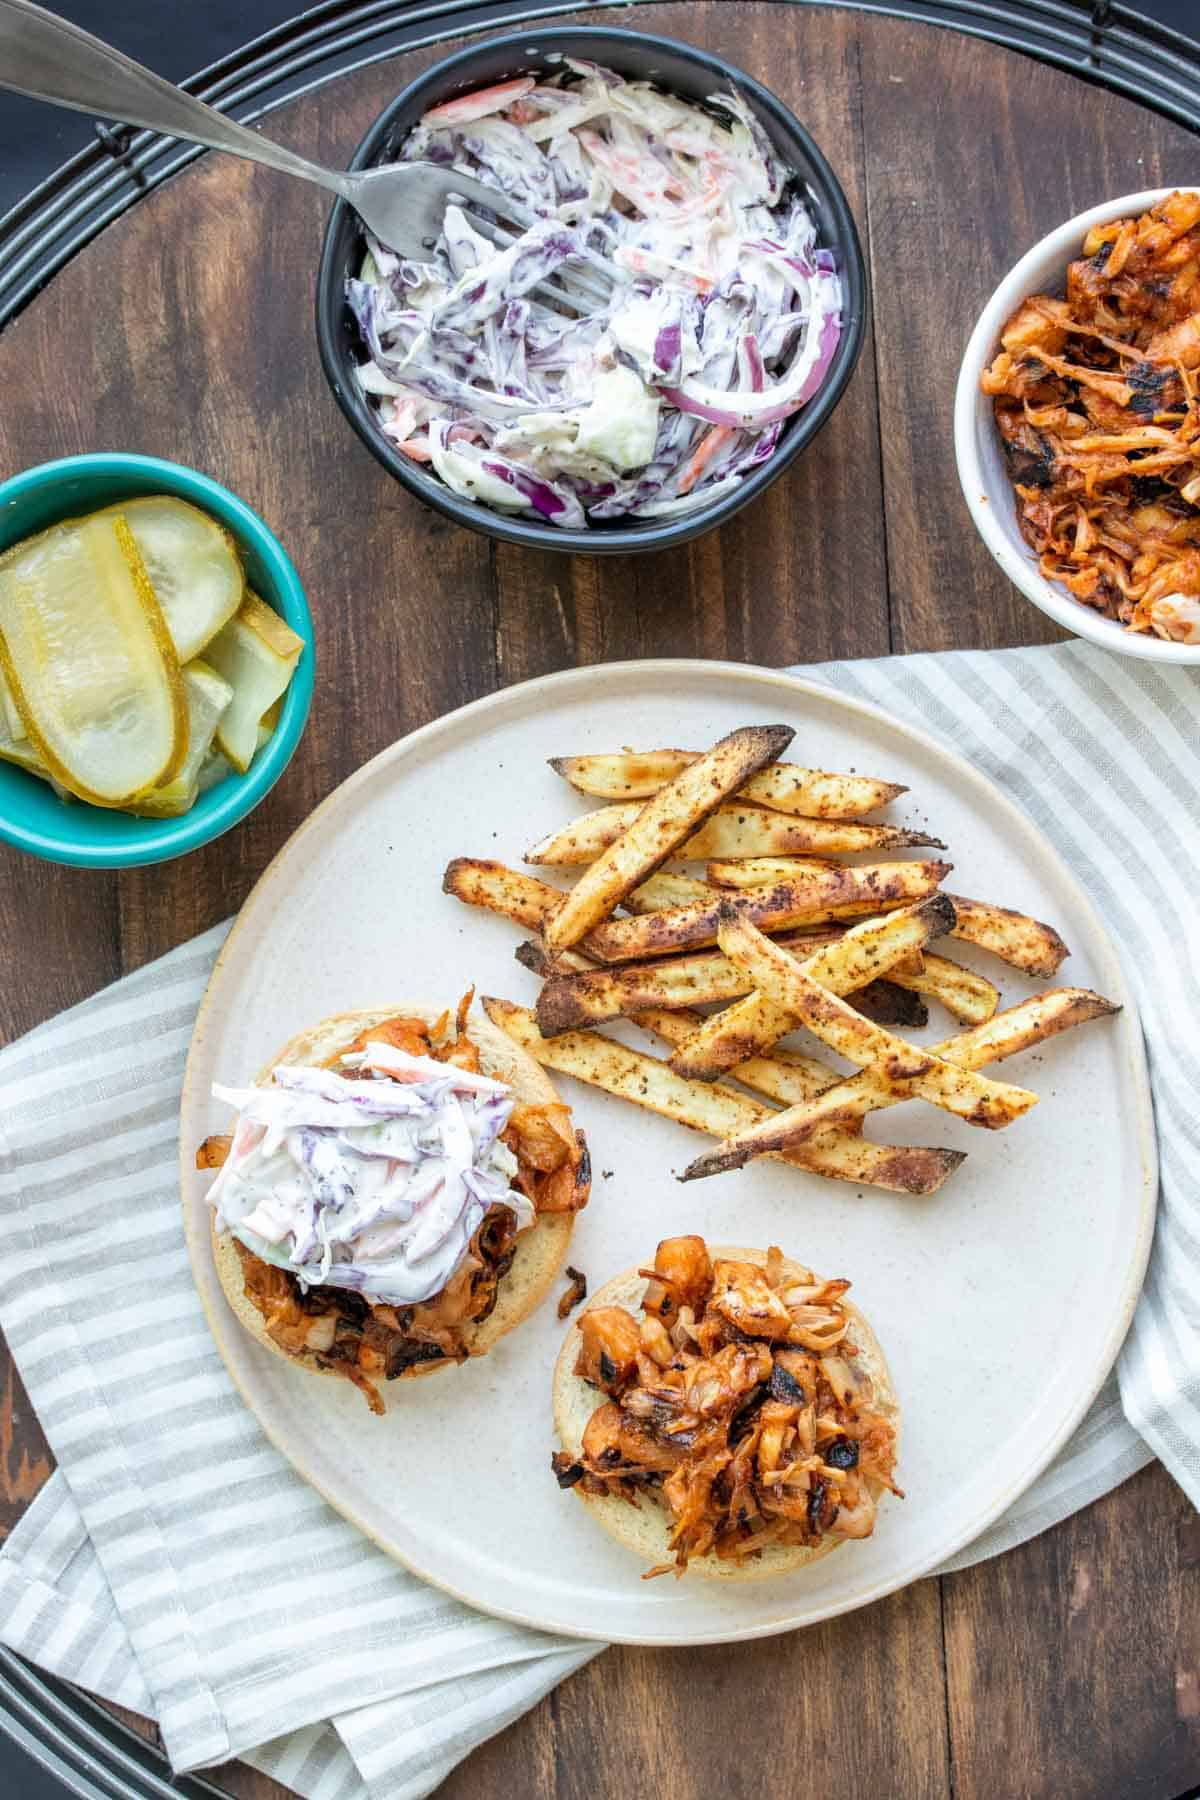 Top view of BBQ jackfruit sandwiches on a plate with coleslaw on top and next to fries